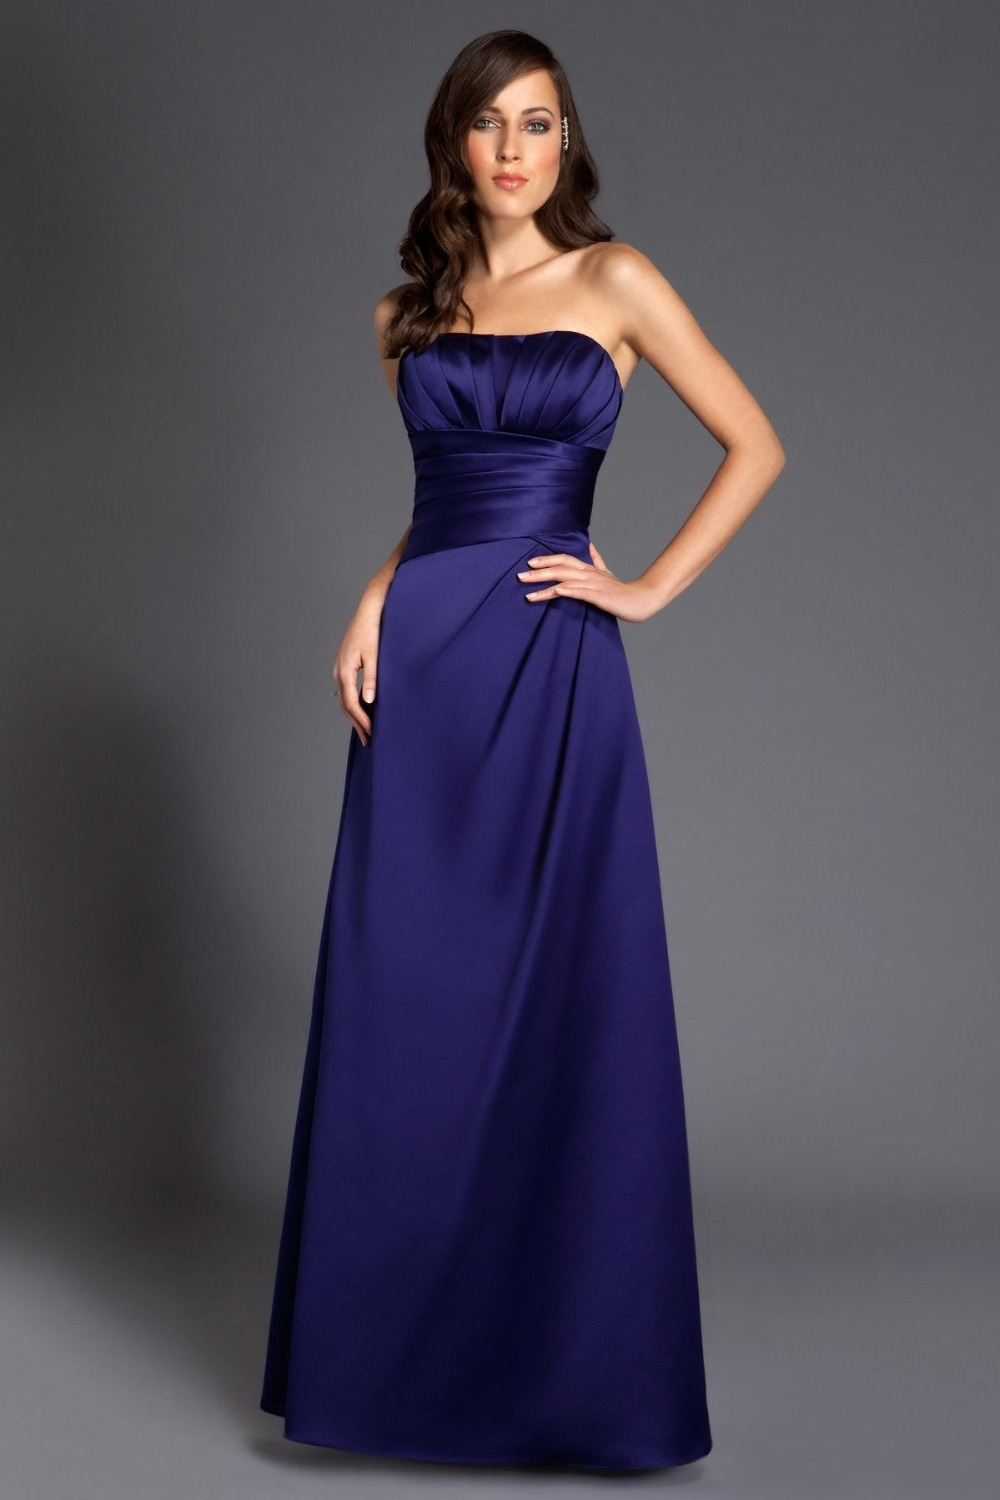 Cheap navy blue bridesmaid dresses cocktail dresses 2016 for Navy blue dresses for wedding